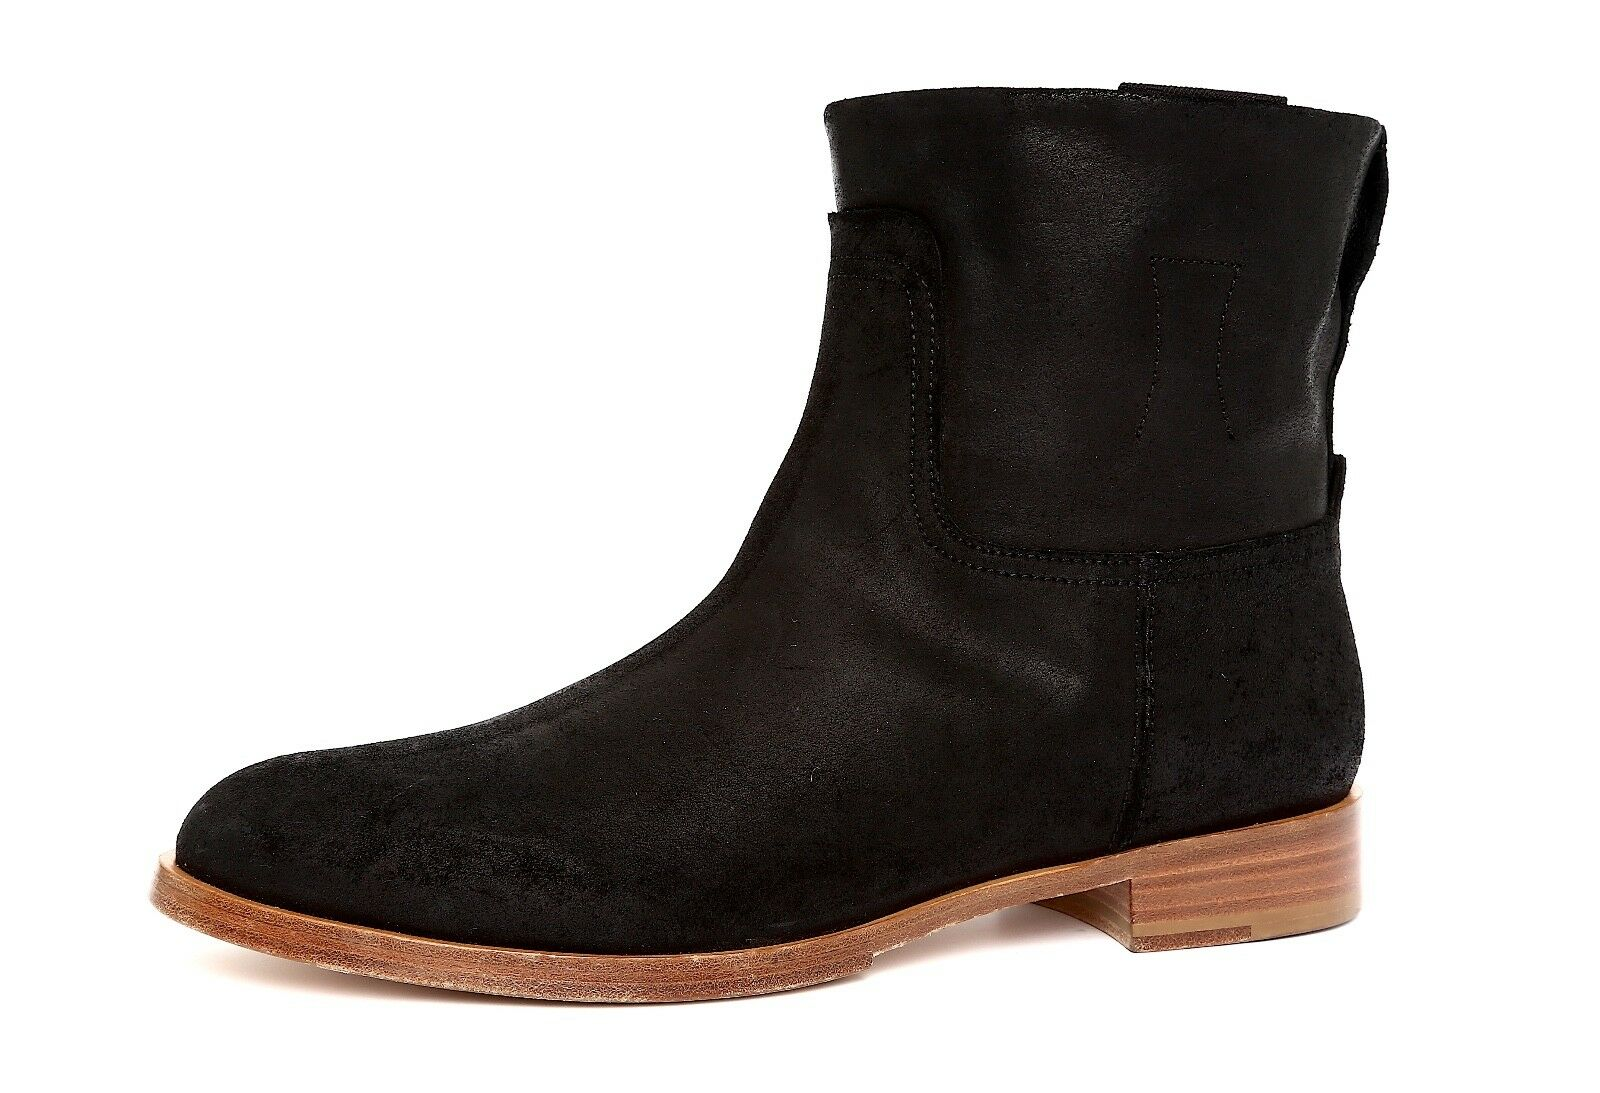 Rag & Bone Holly Women's Black Ankle Bootie Sz 41 *